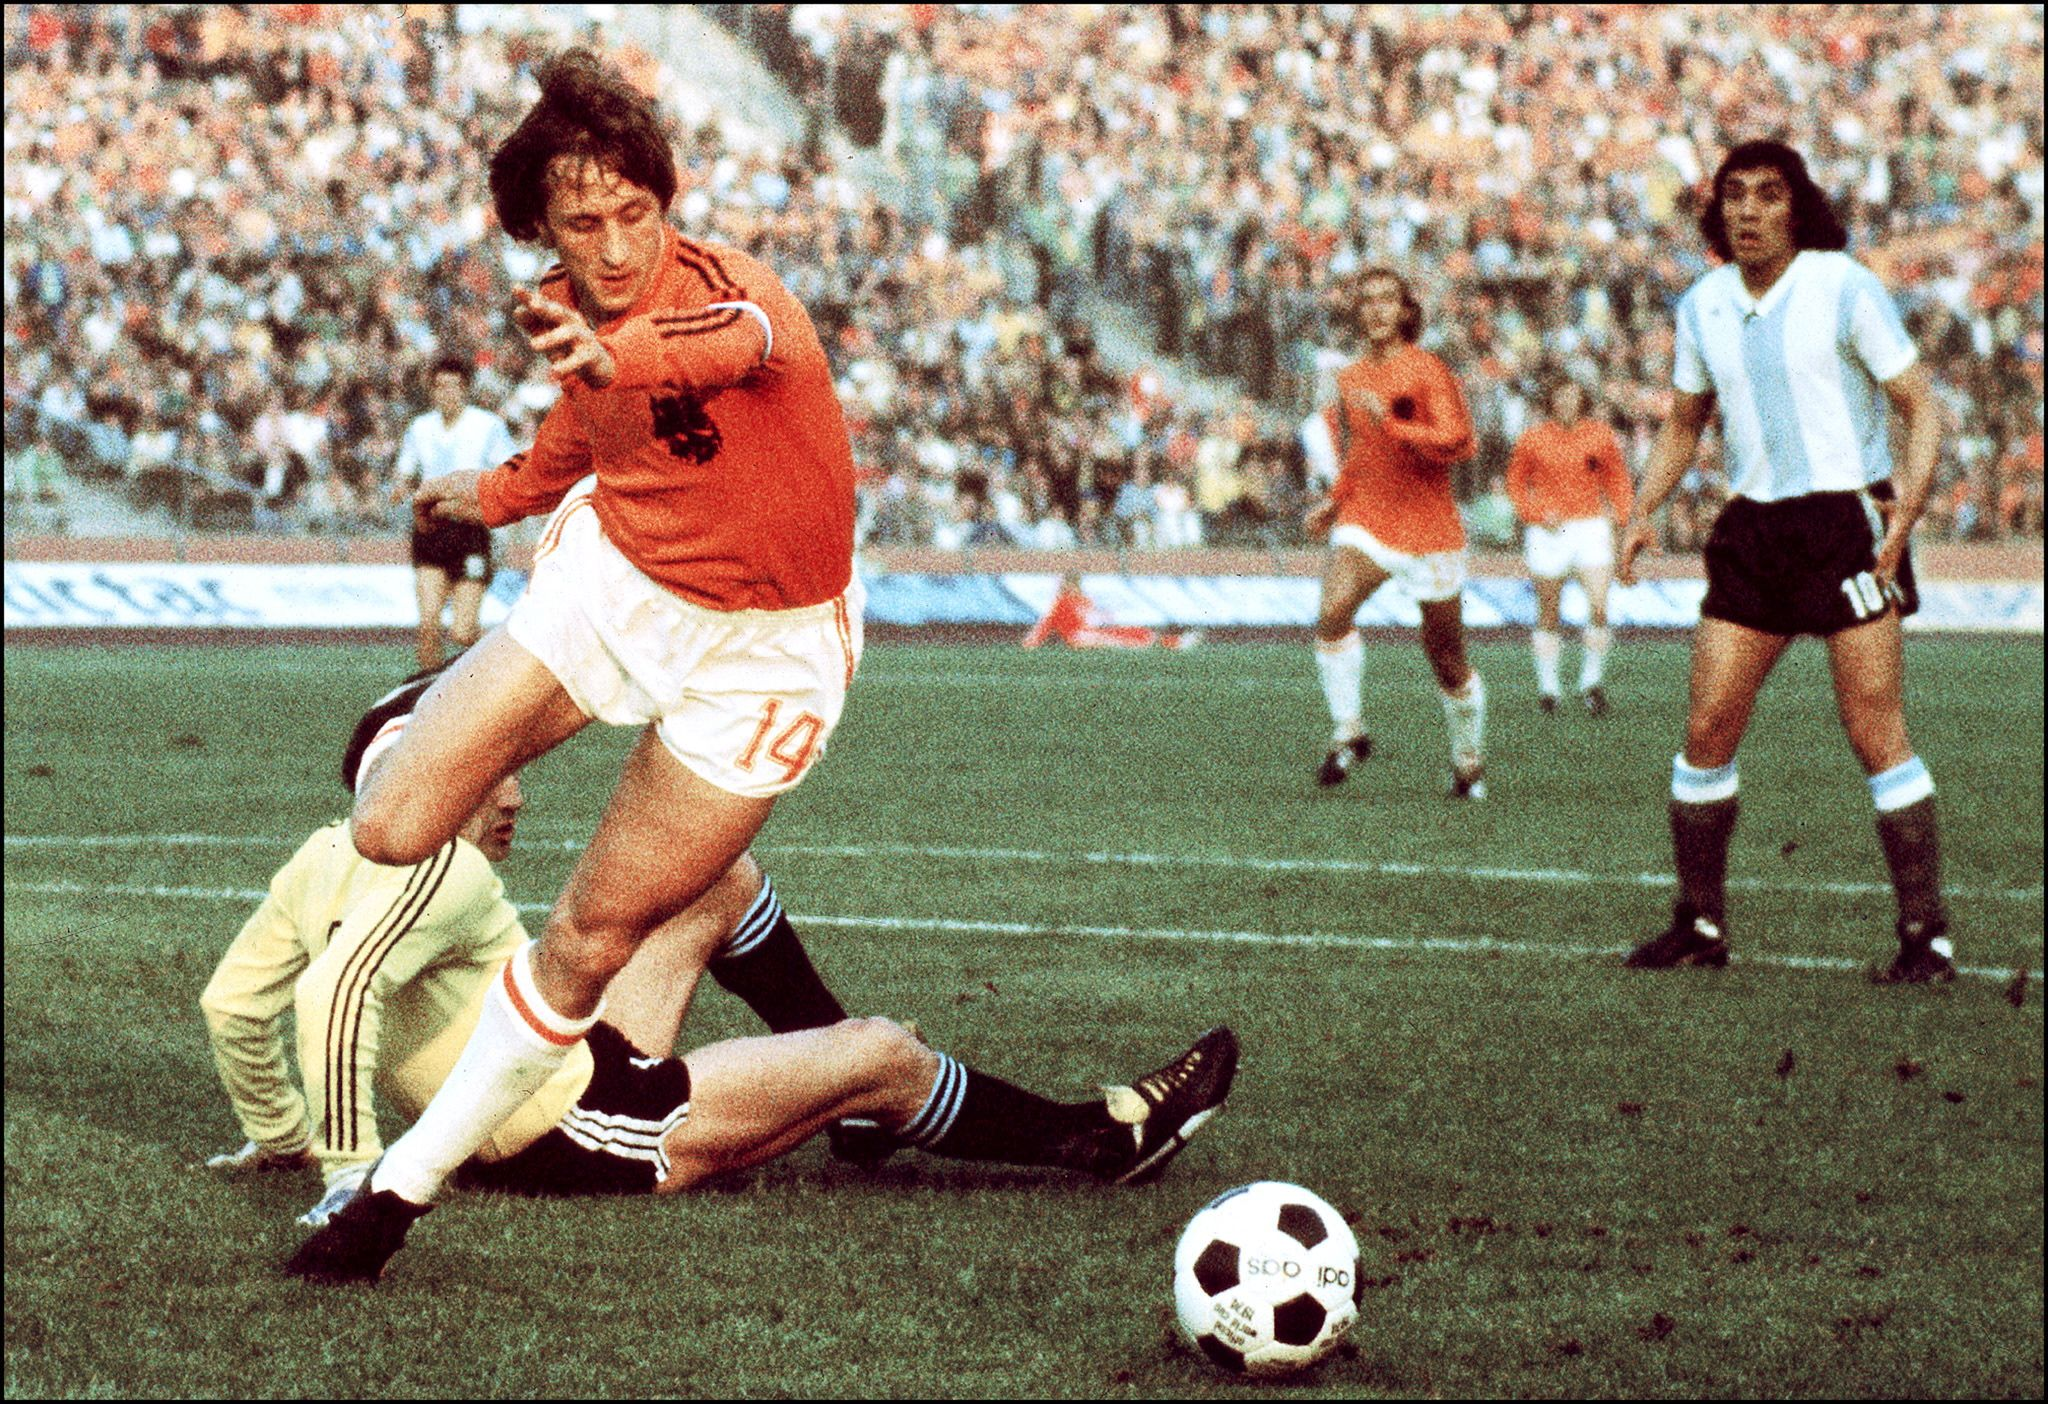 Johan Cruyff was widely acclaimed as one of the greatest footballers of all time.